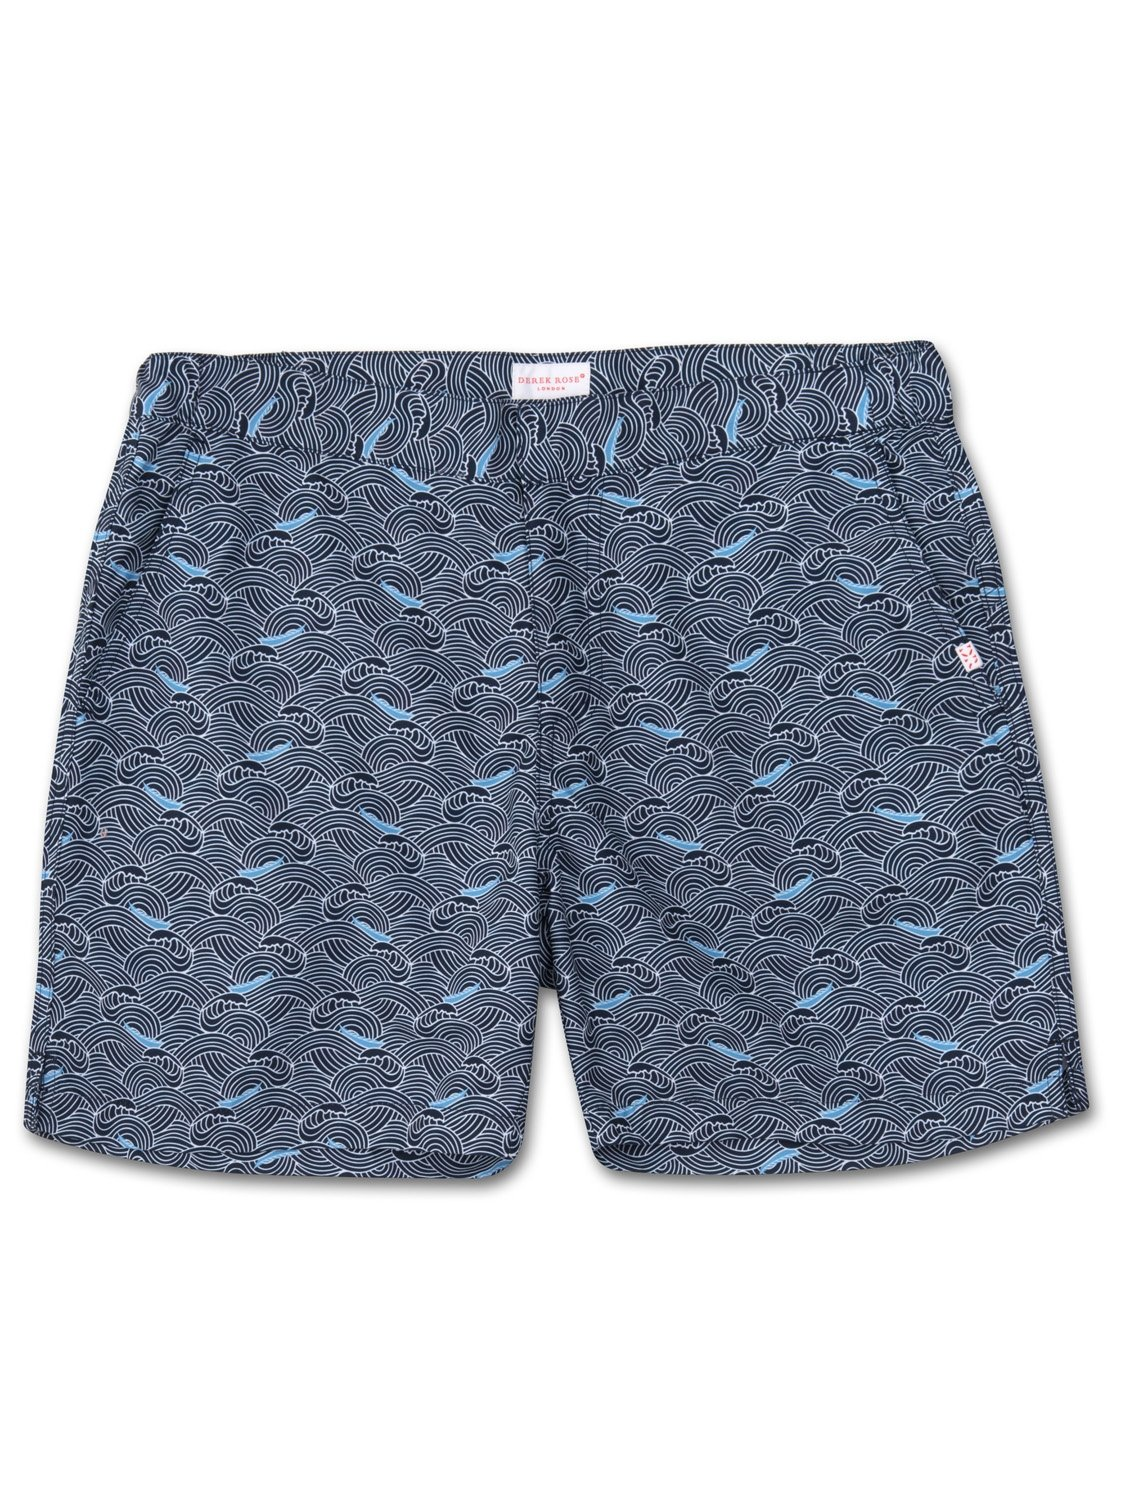 Men's Modern Fit Swim Shorts Maui 7 Navy